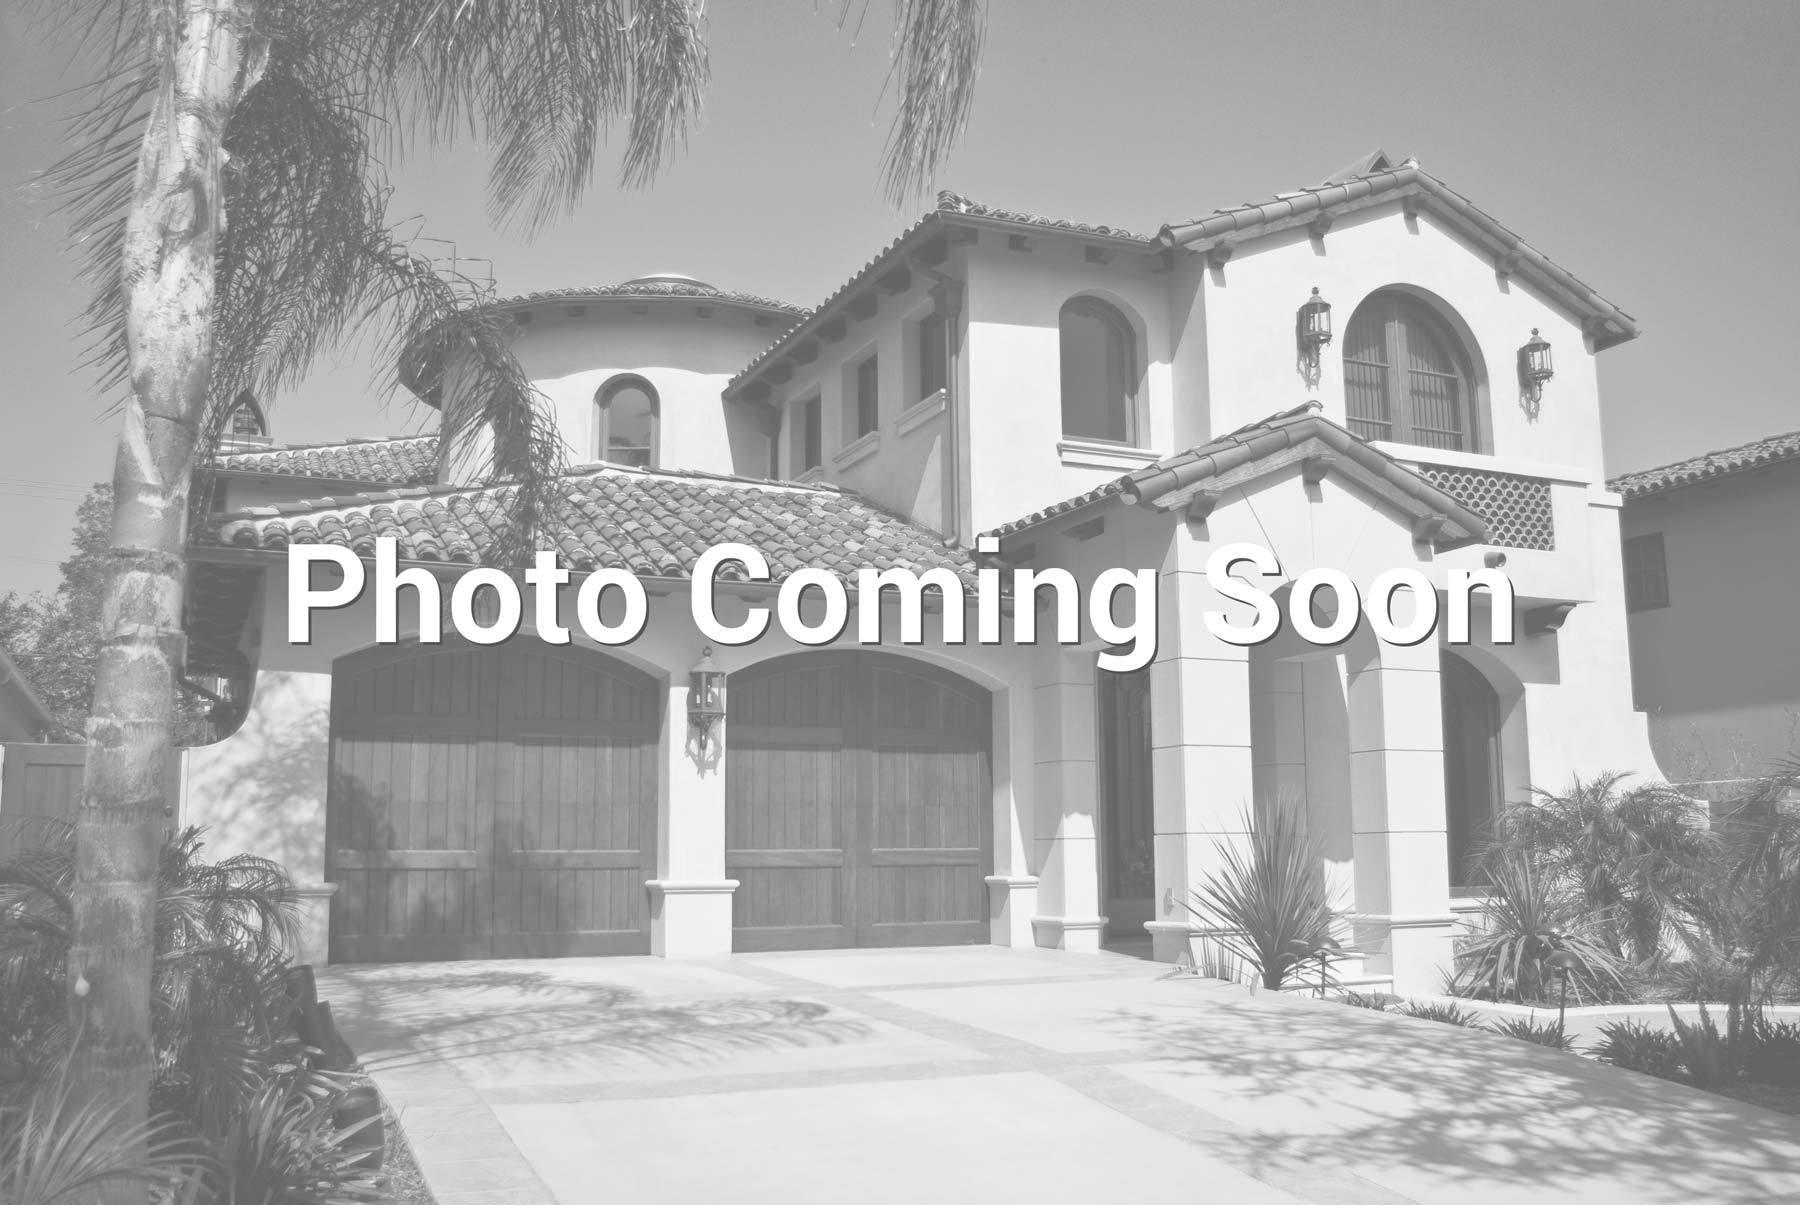 $679,990 - 5Br/4Ba - Home for Sale in Arabian Crest 3, Scottsdale